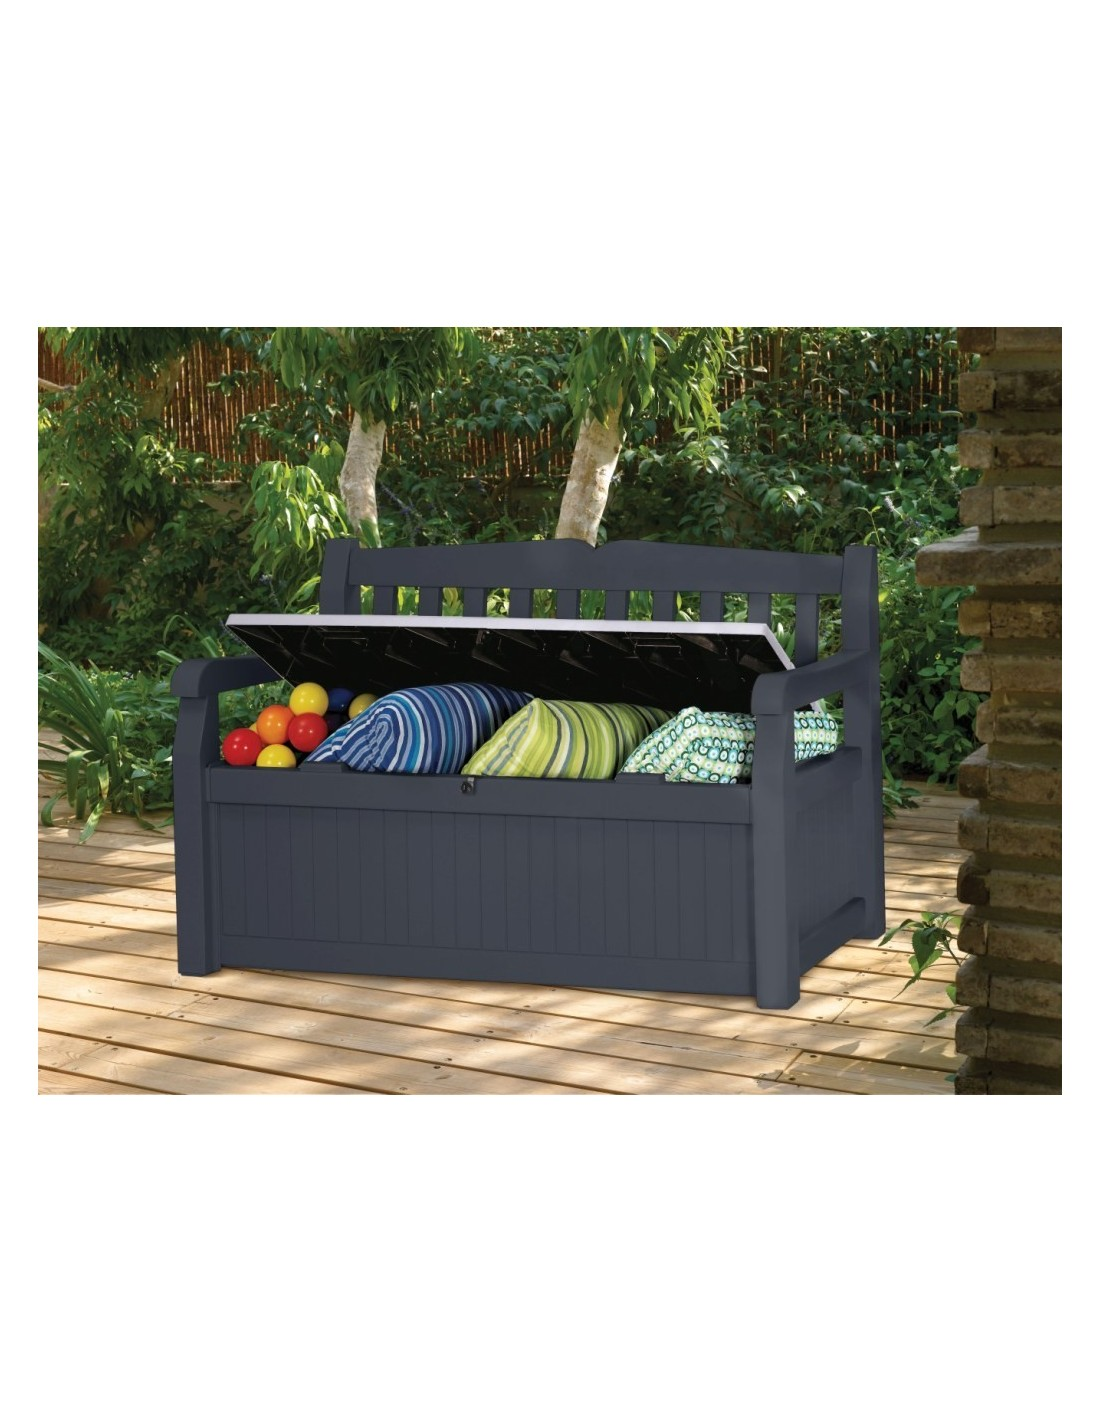 coffre banc de jardin ou terrasse gris anthracite 265 l en pvc. Black Bedroom Furniture Sets. Home Design Ideas